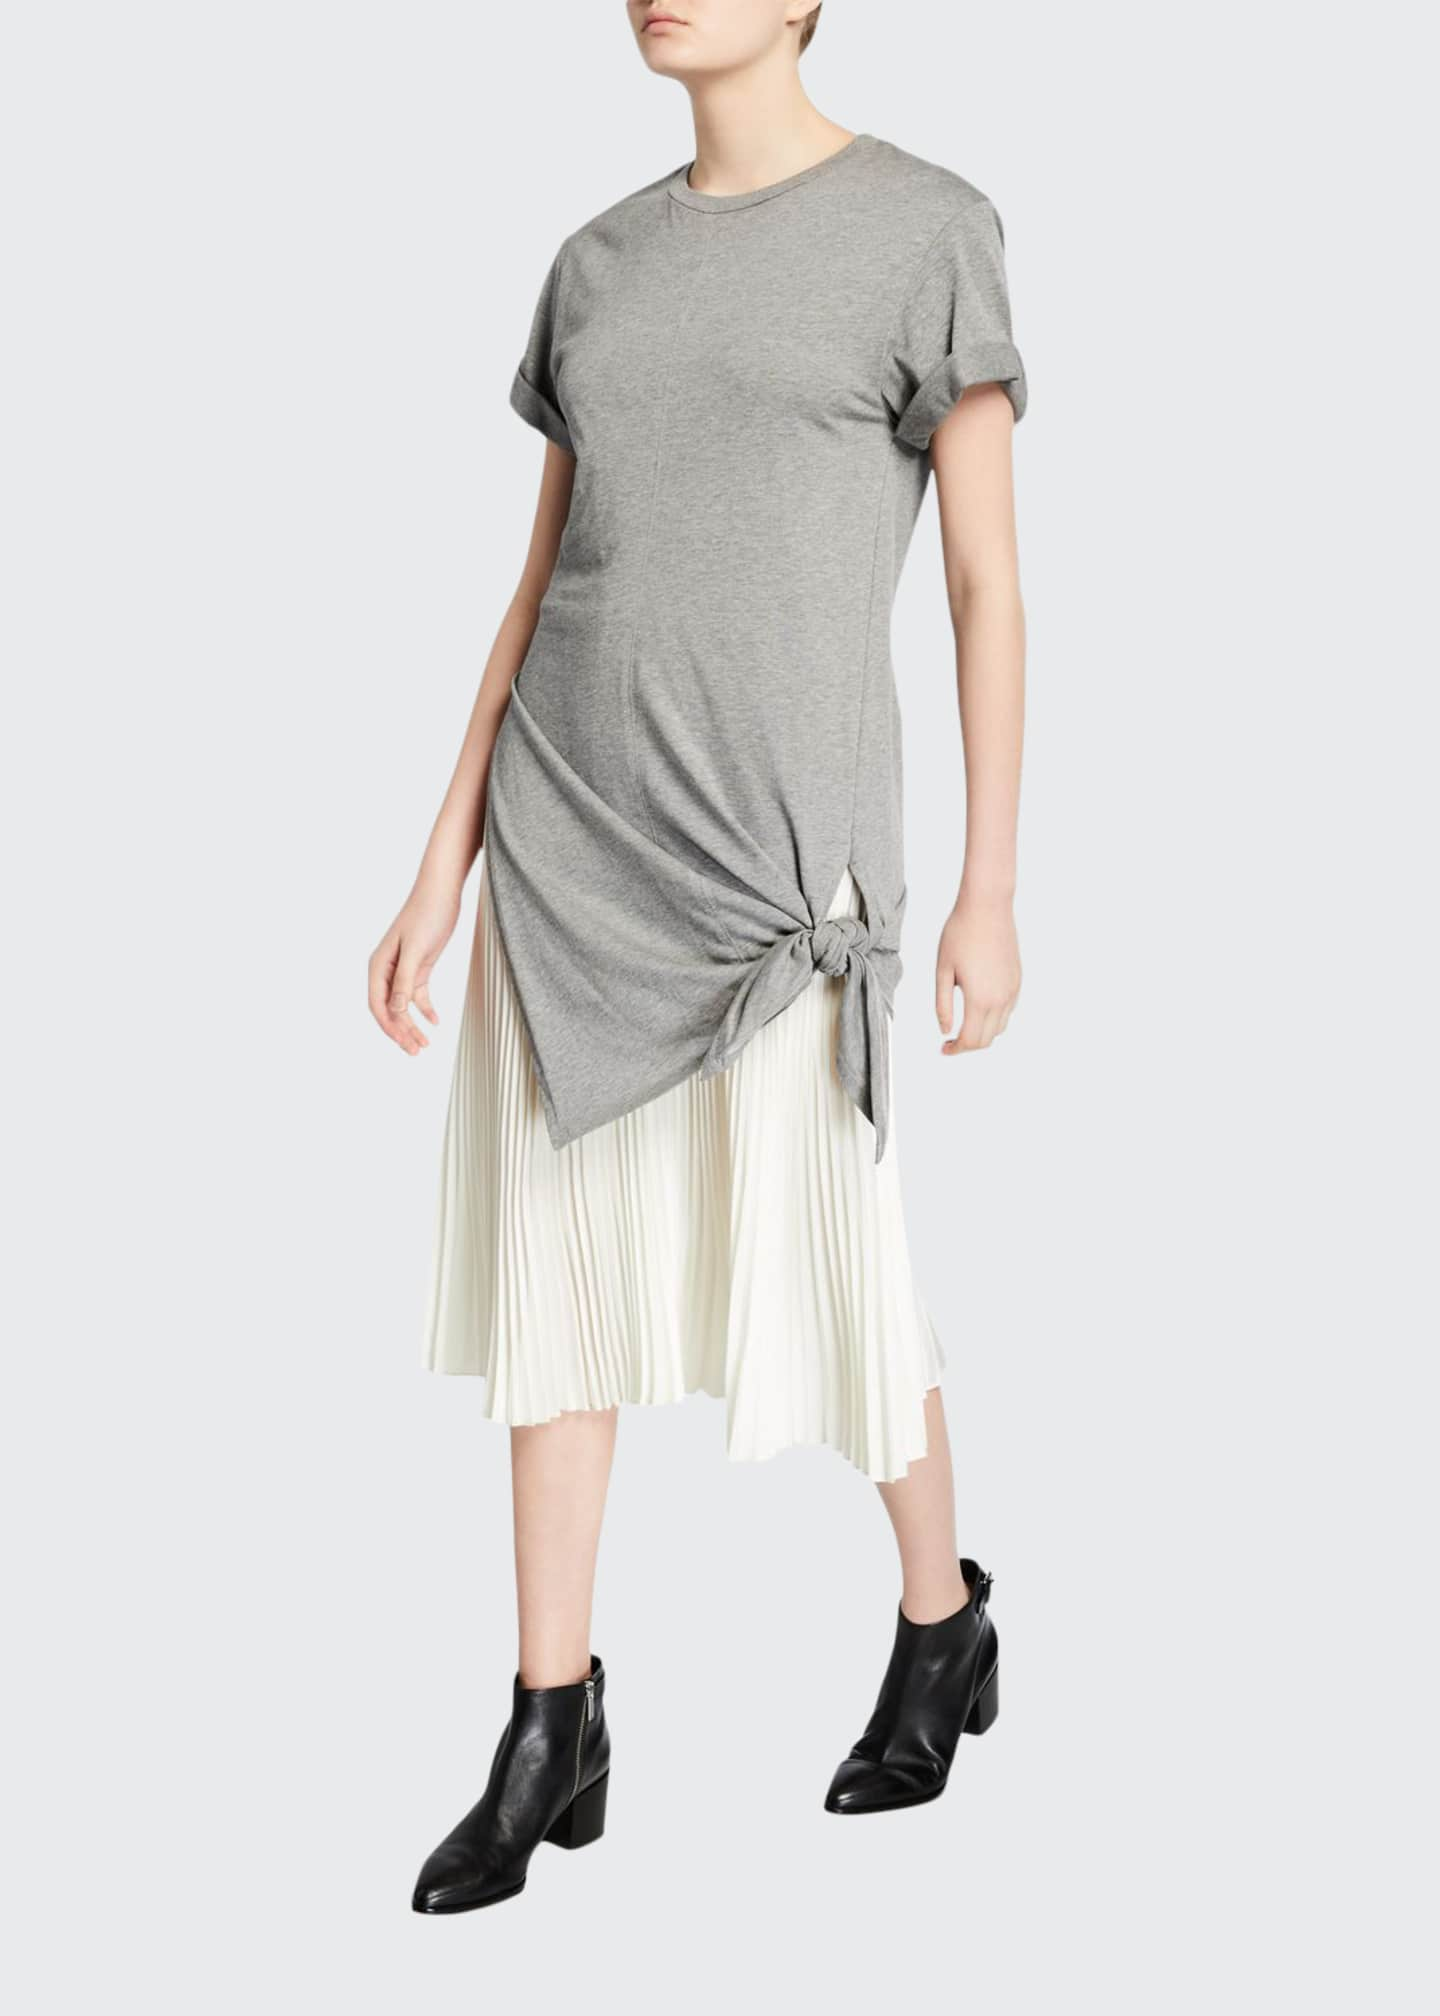 3.1 Phillip Lim Side-Tie Crewneck Tee Dress with